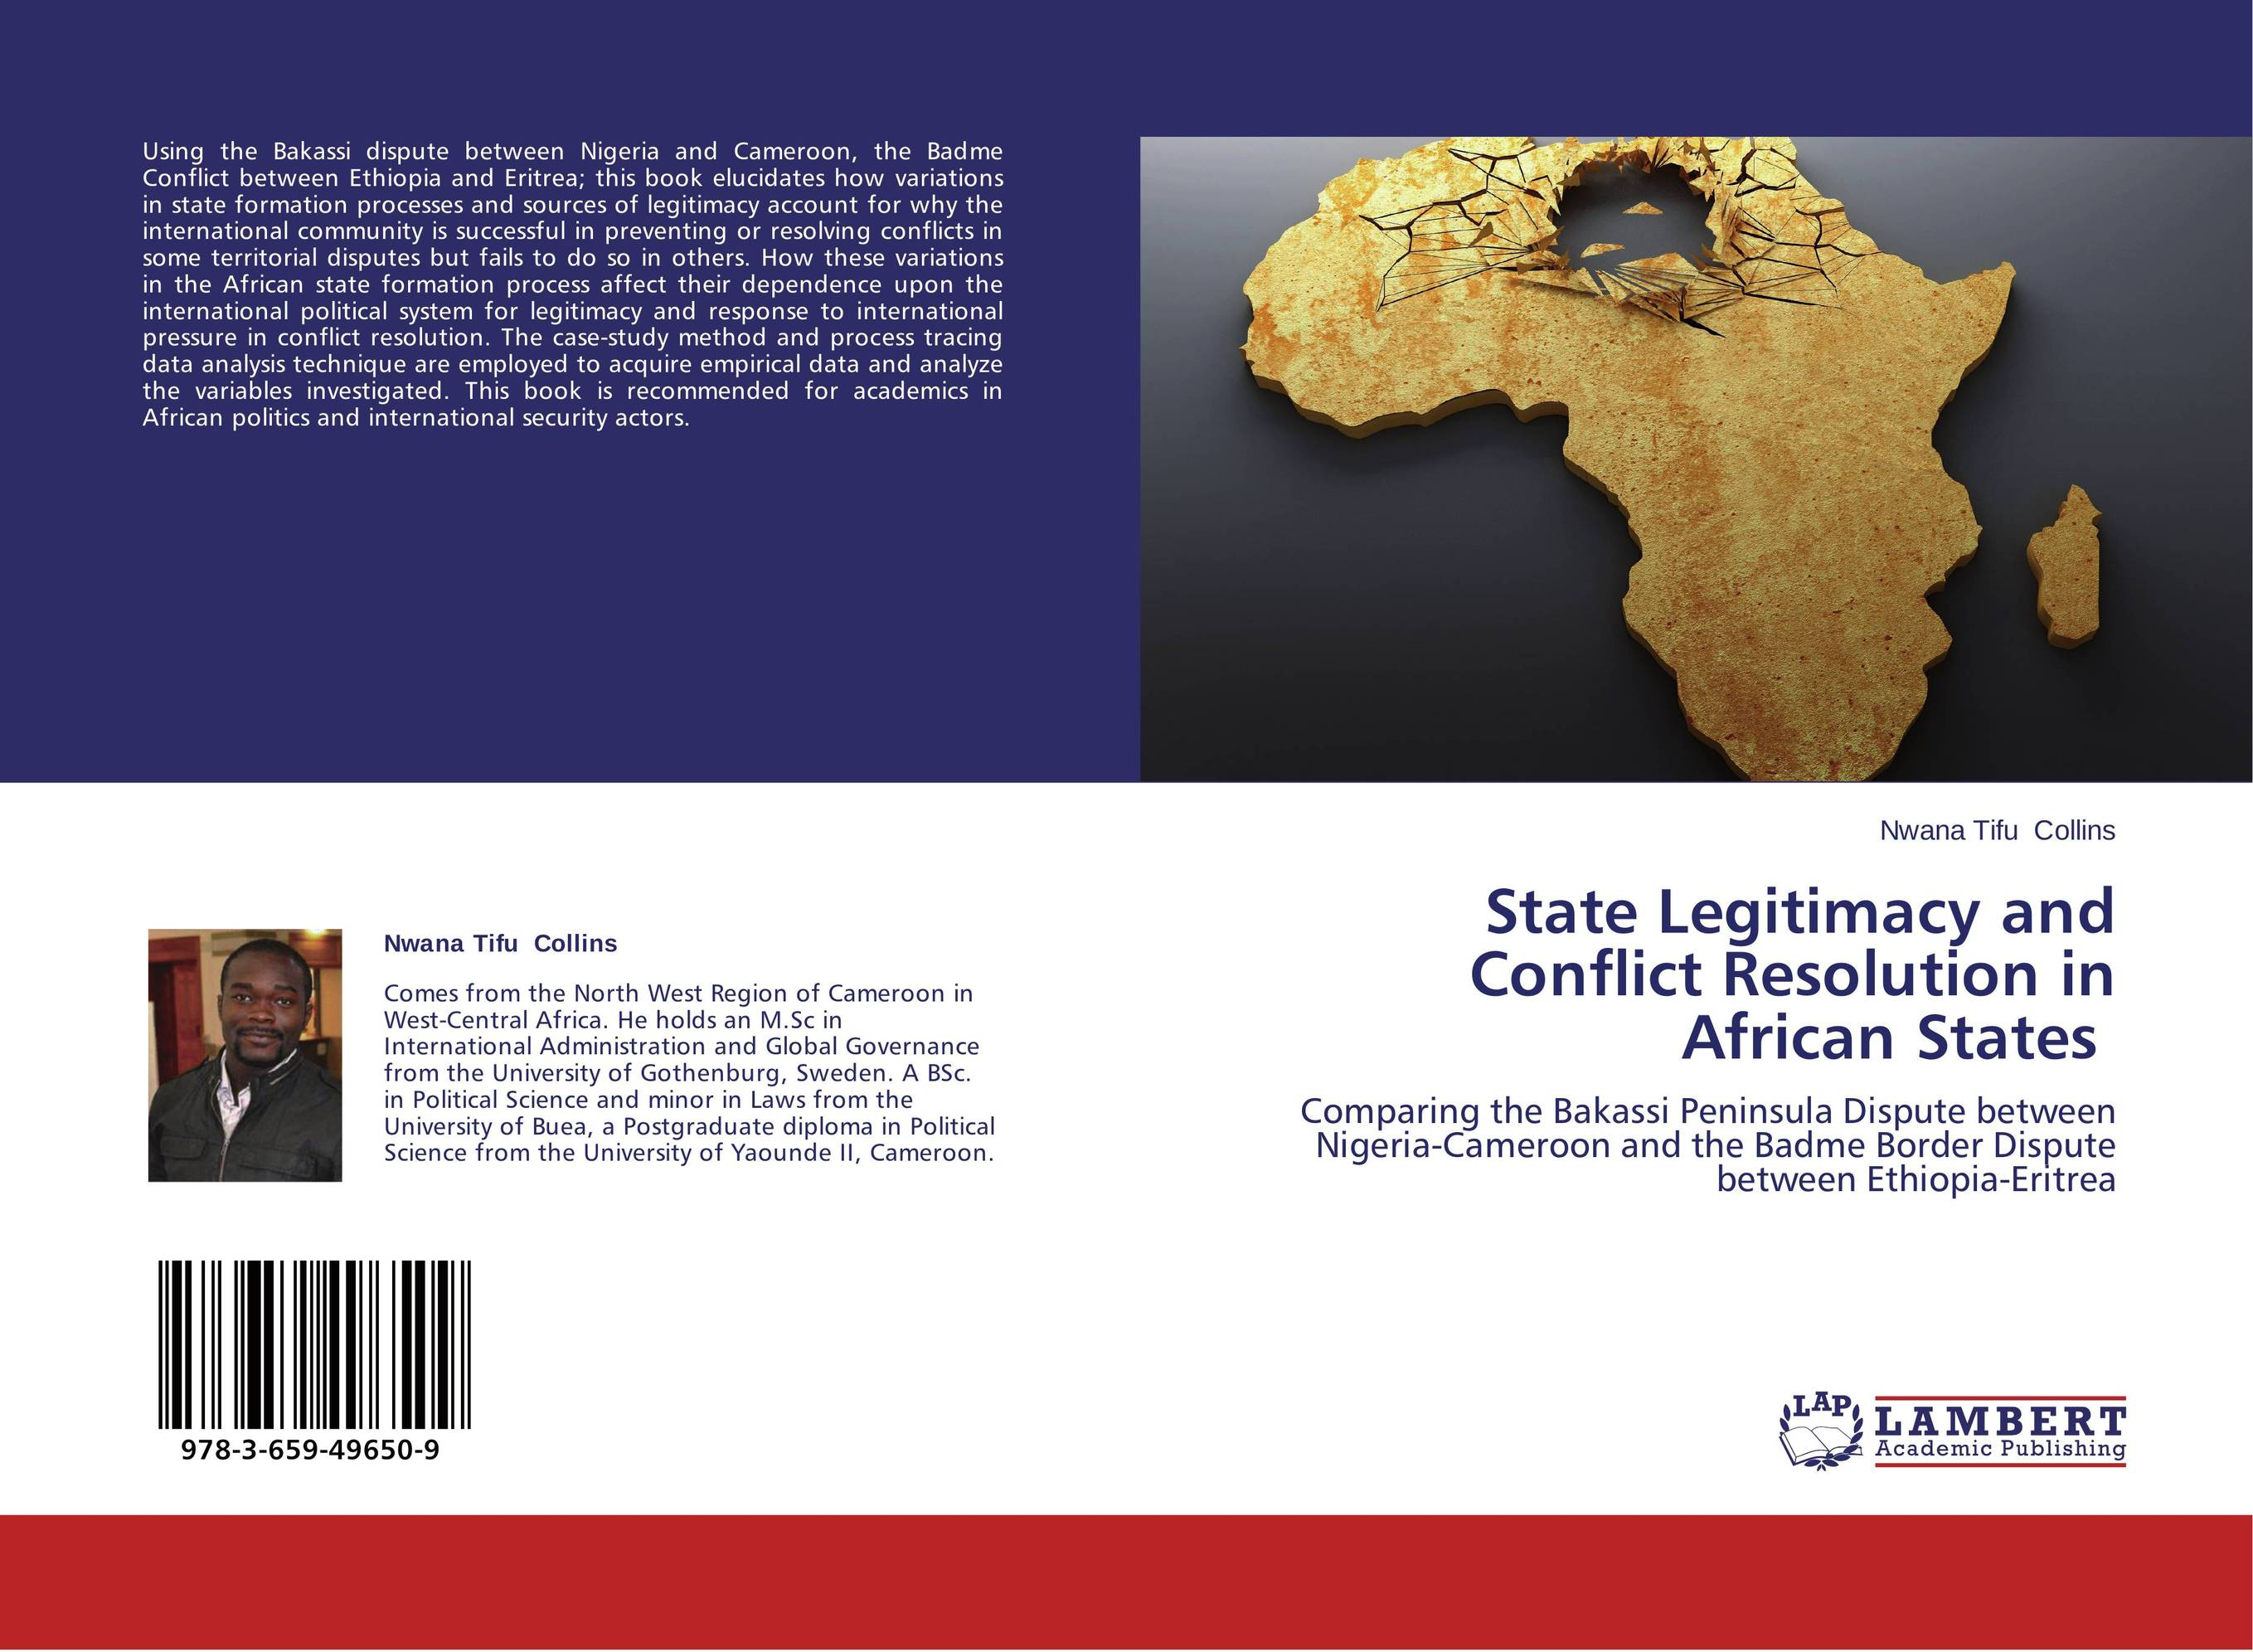 peace and conflict resolution in africa Women and peace in africa 8-shs-11157(a) women and peace 5/12/03 17:27 page 8 through this collaborative endeavour, unesco, unidir and african women working for the establishment of a culture of peace on the continent hope to share knowledge on traditional conflict resolution and peace building practices the aim is to strengthen the.